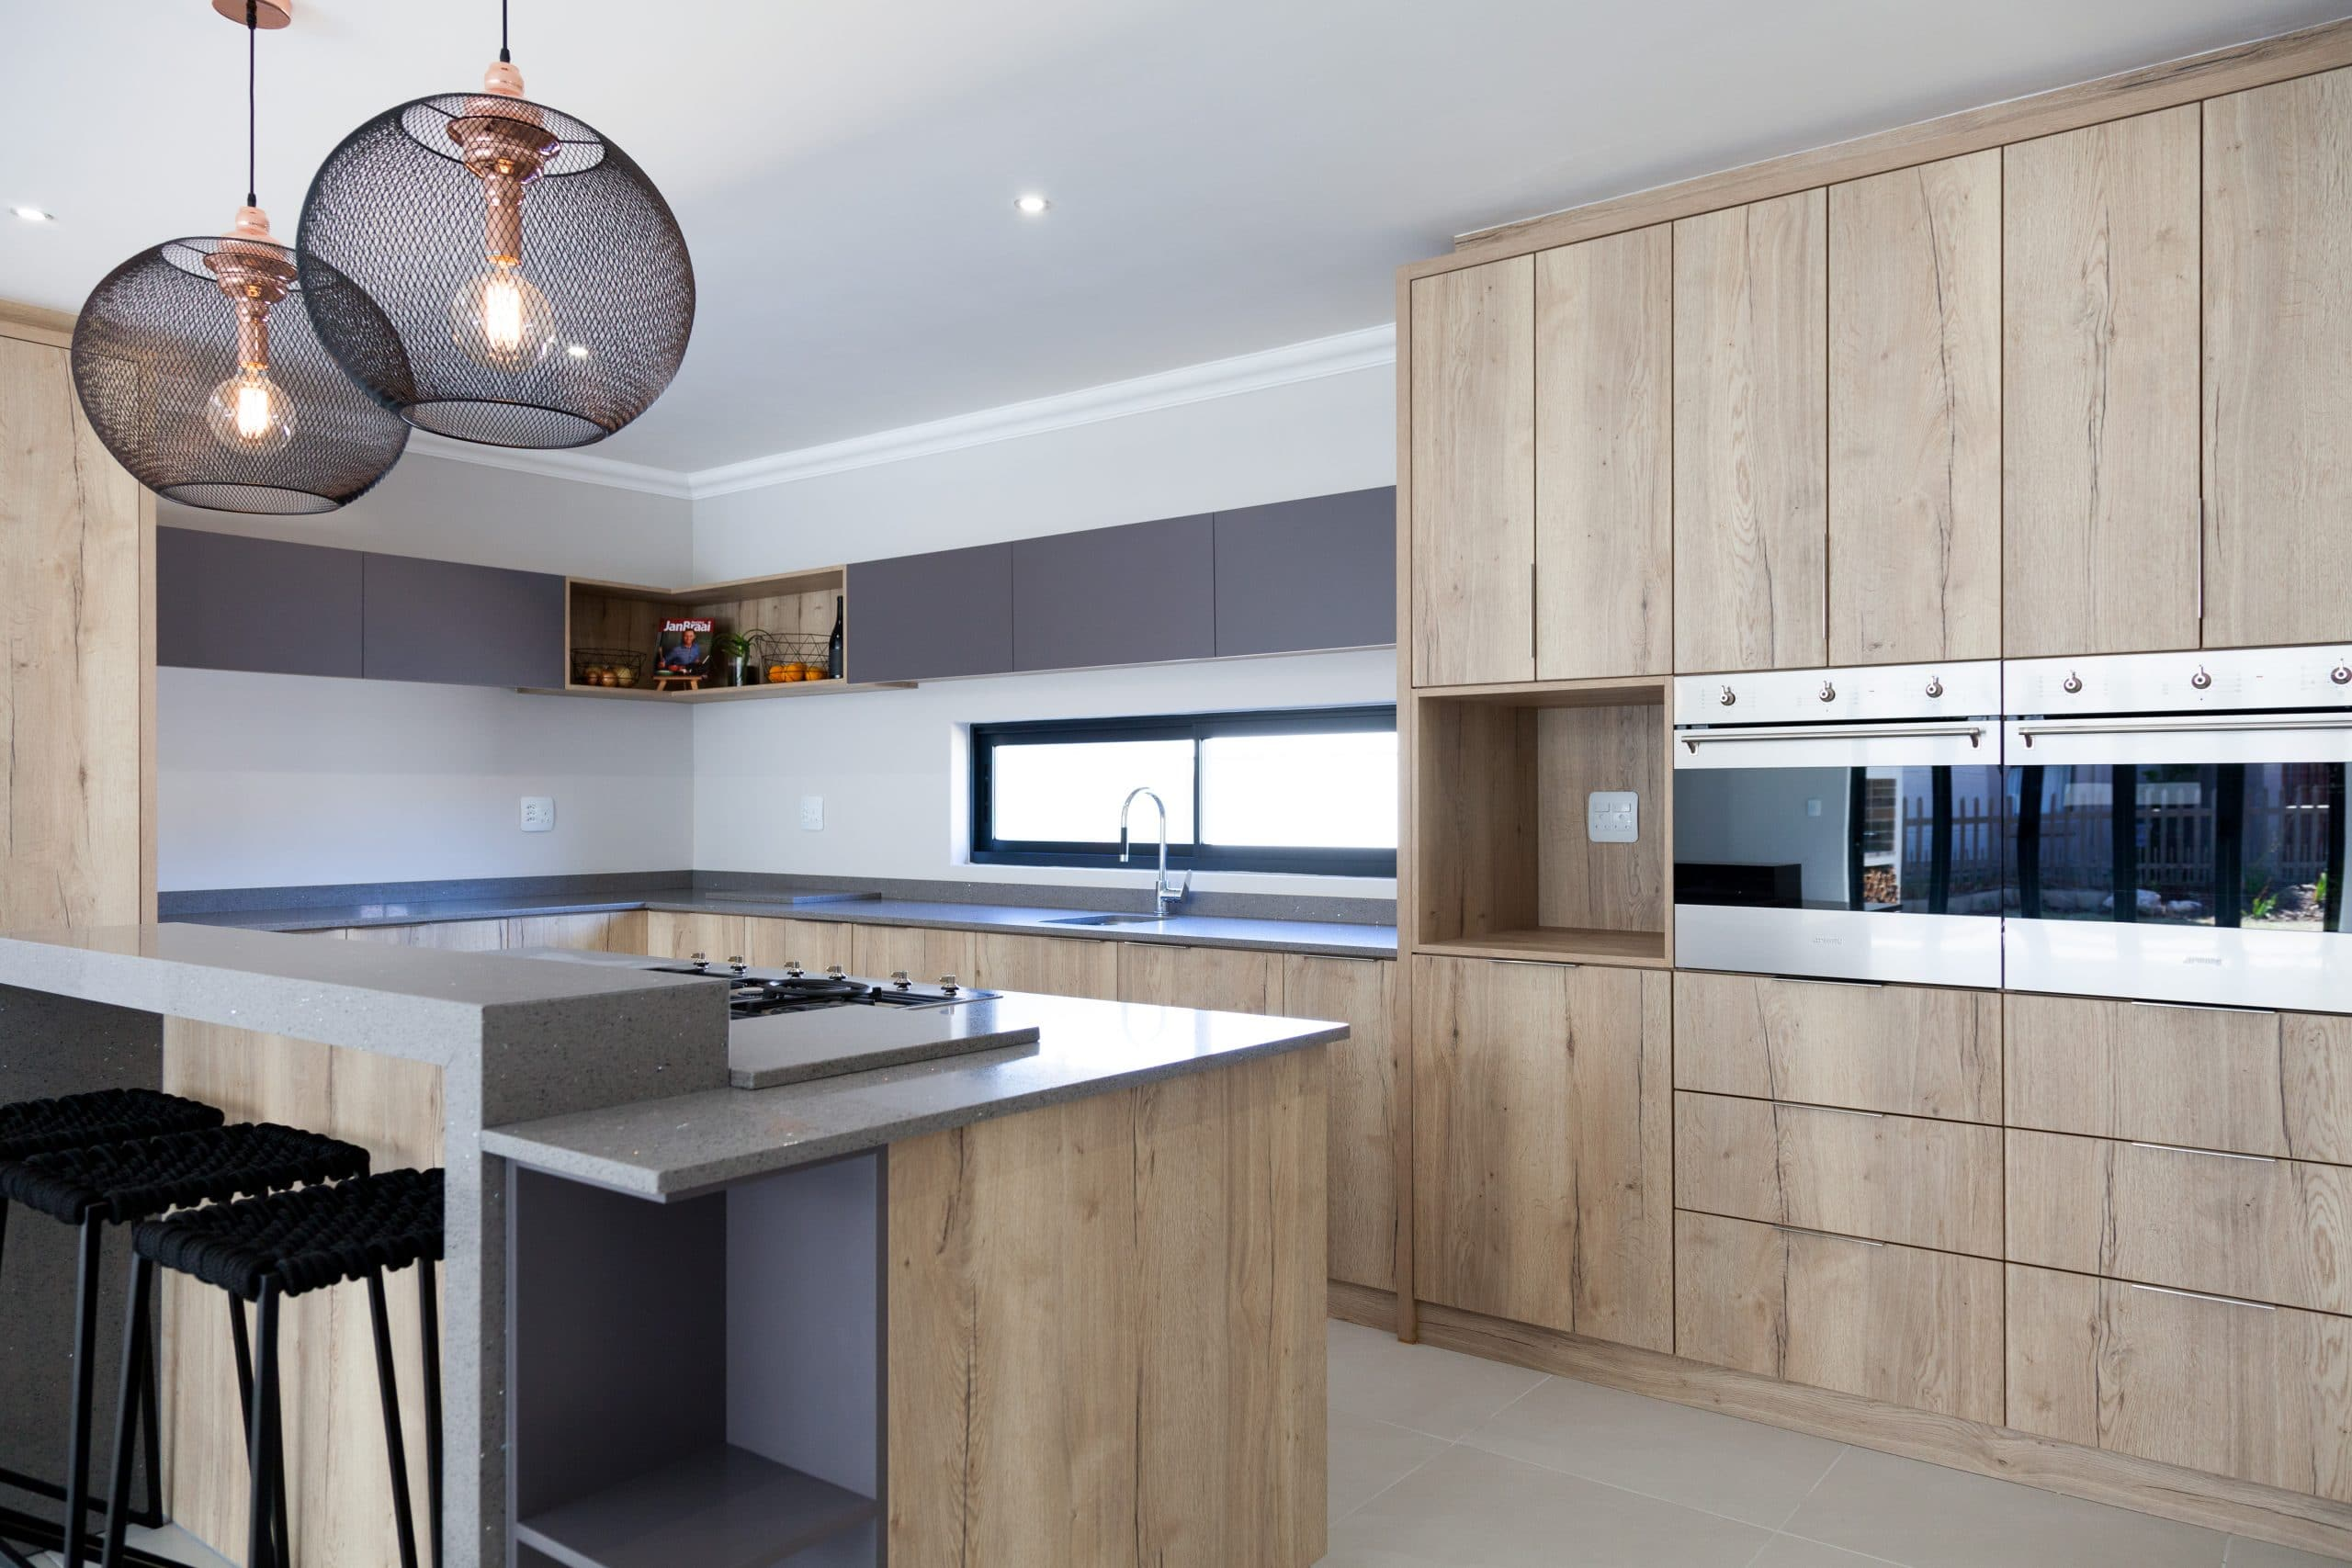 wire pendants with filament bulp lightning over kitchen island with smeg appliances